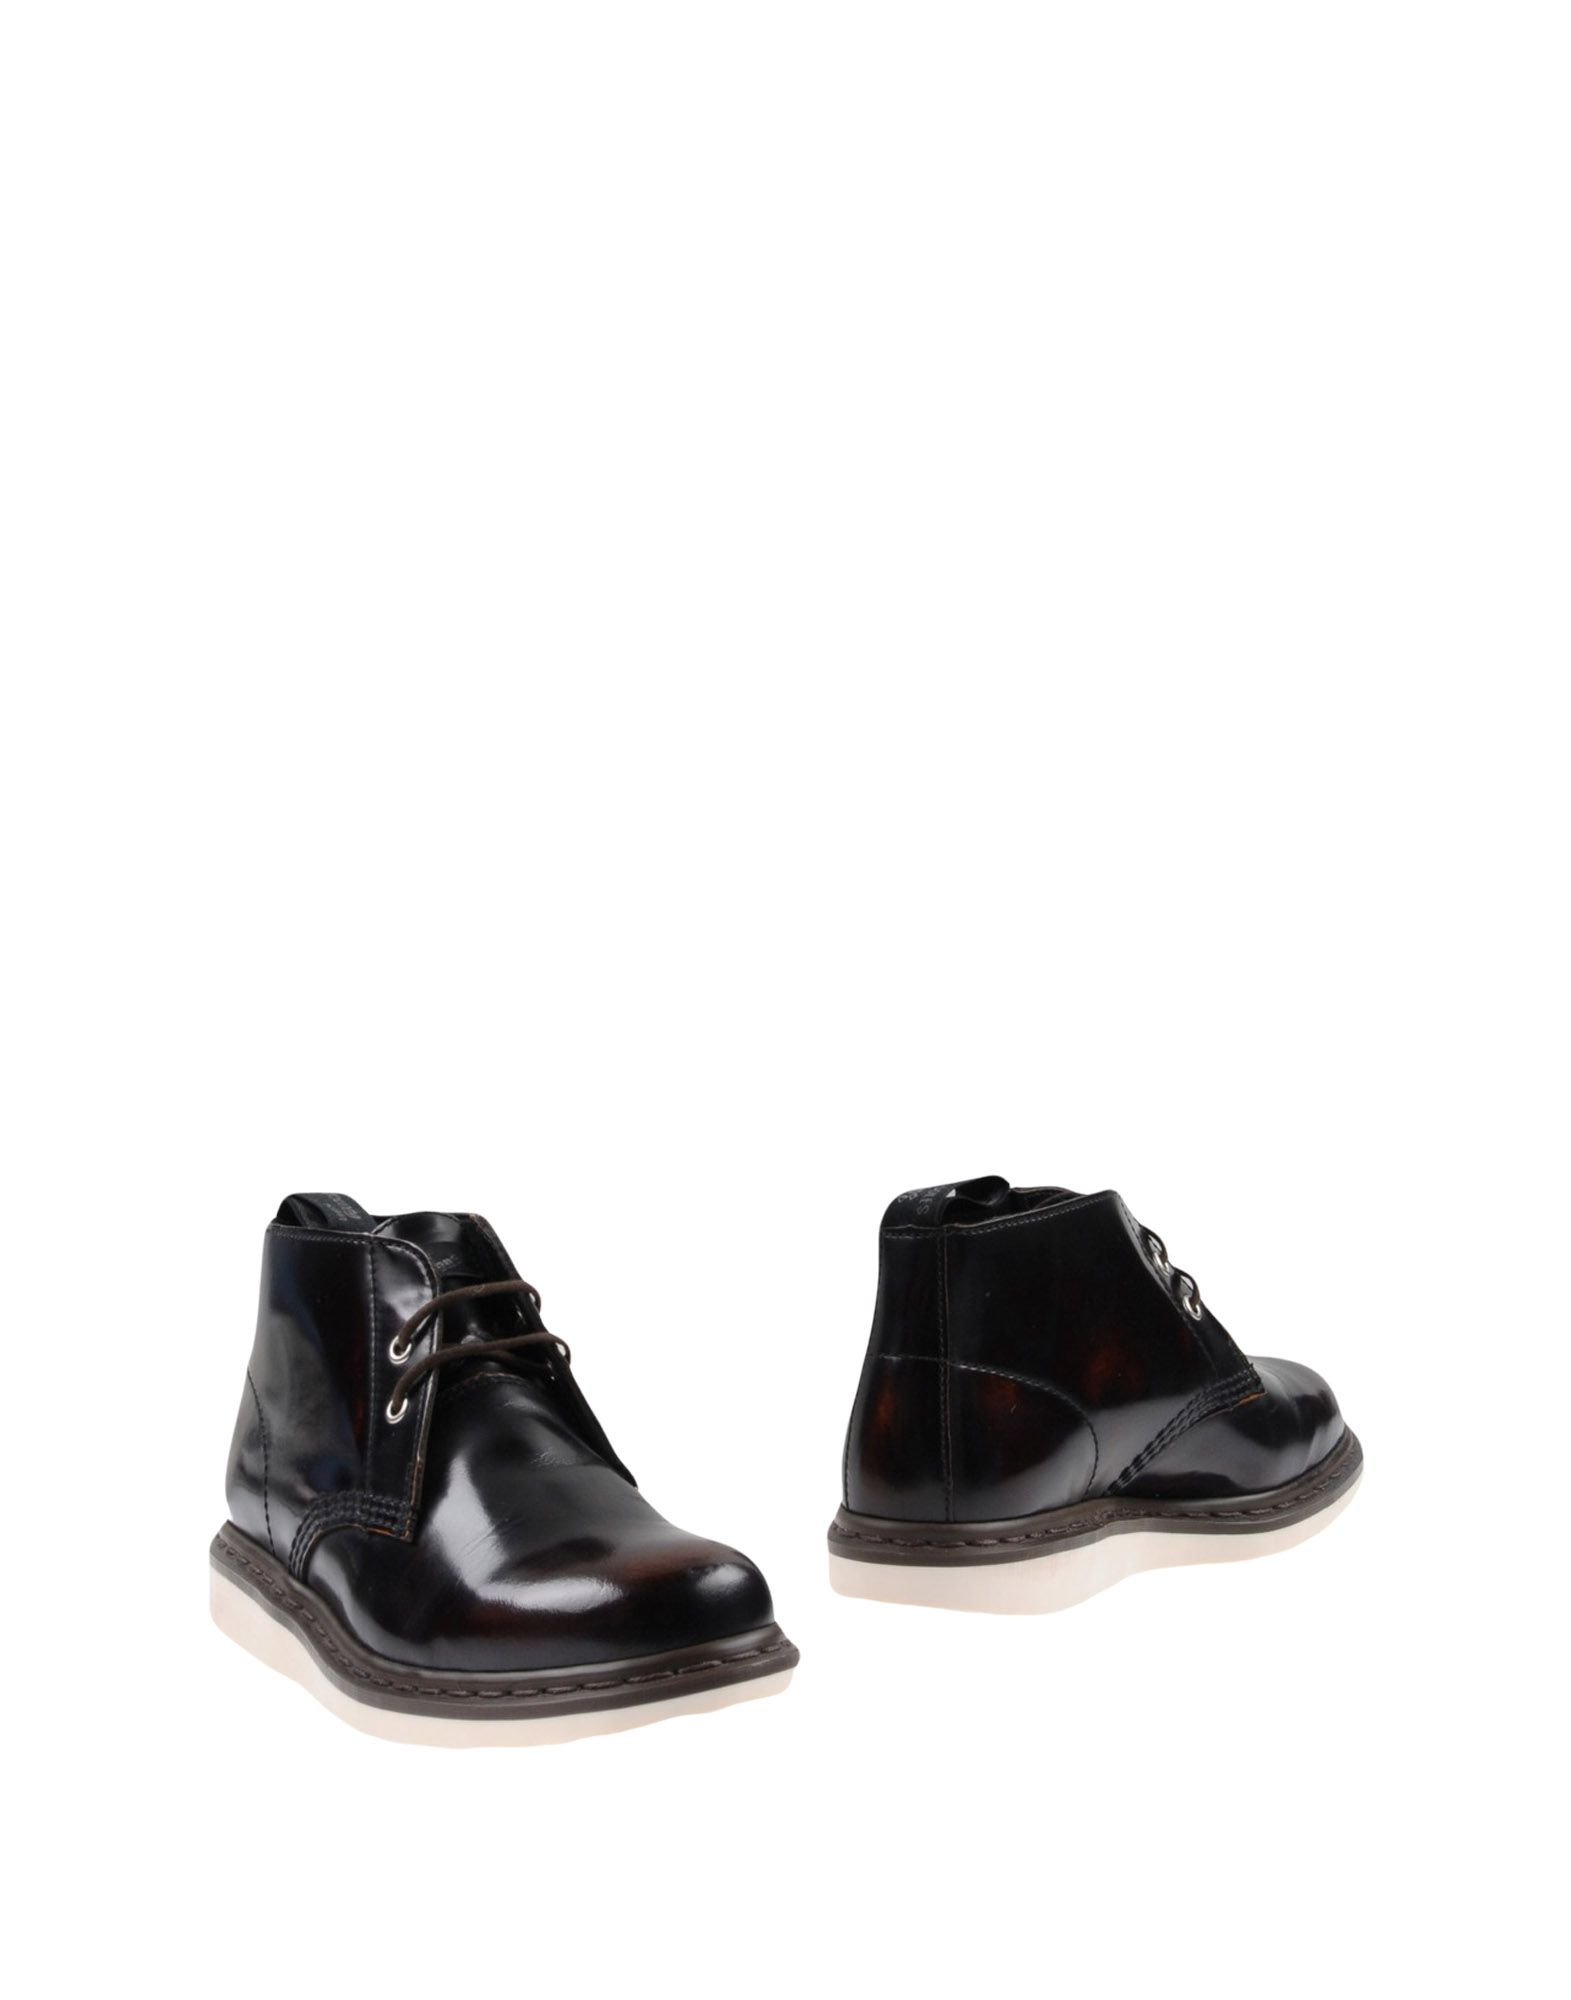 Bottine Dr. Martens Homme - Bottines Dr. Martens sur